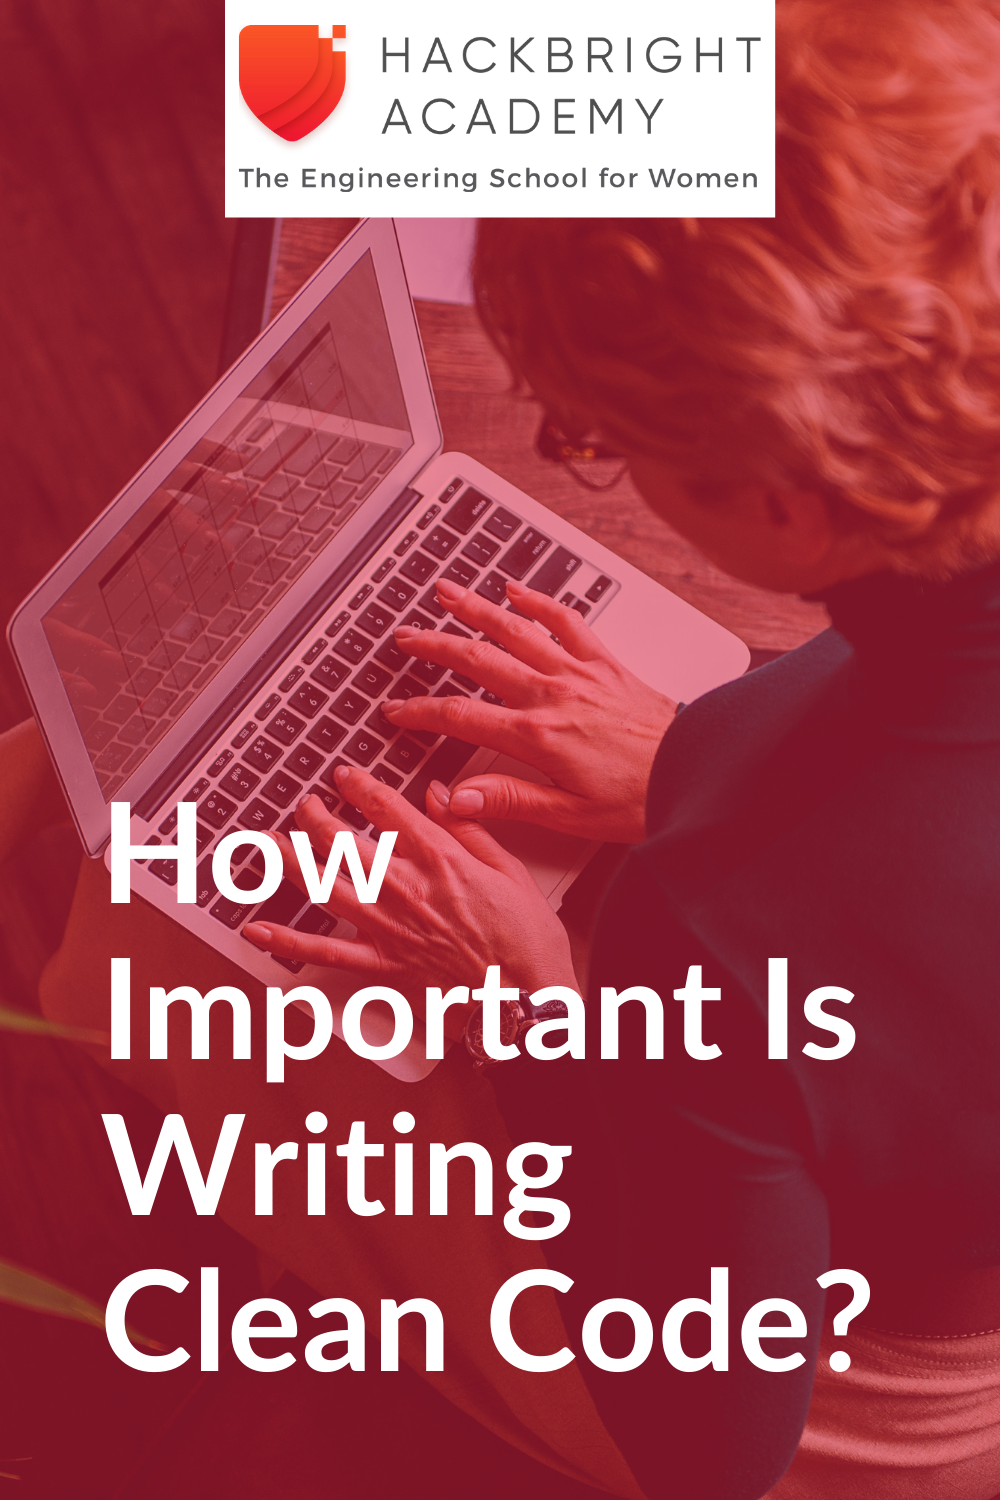 How Important Is Writing Clean Code?